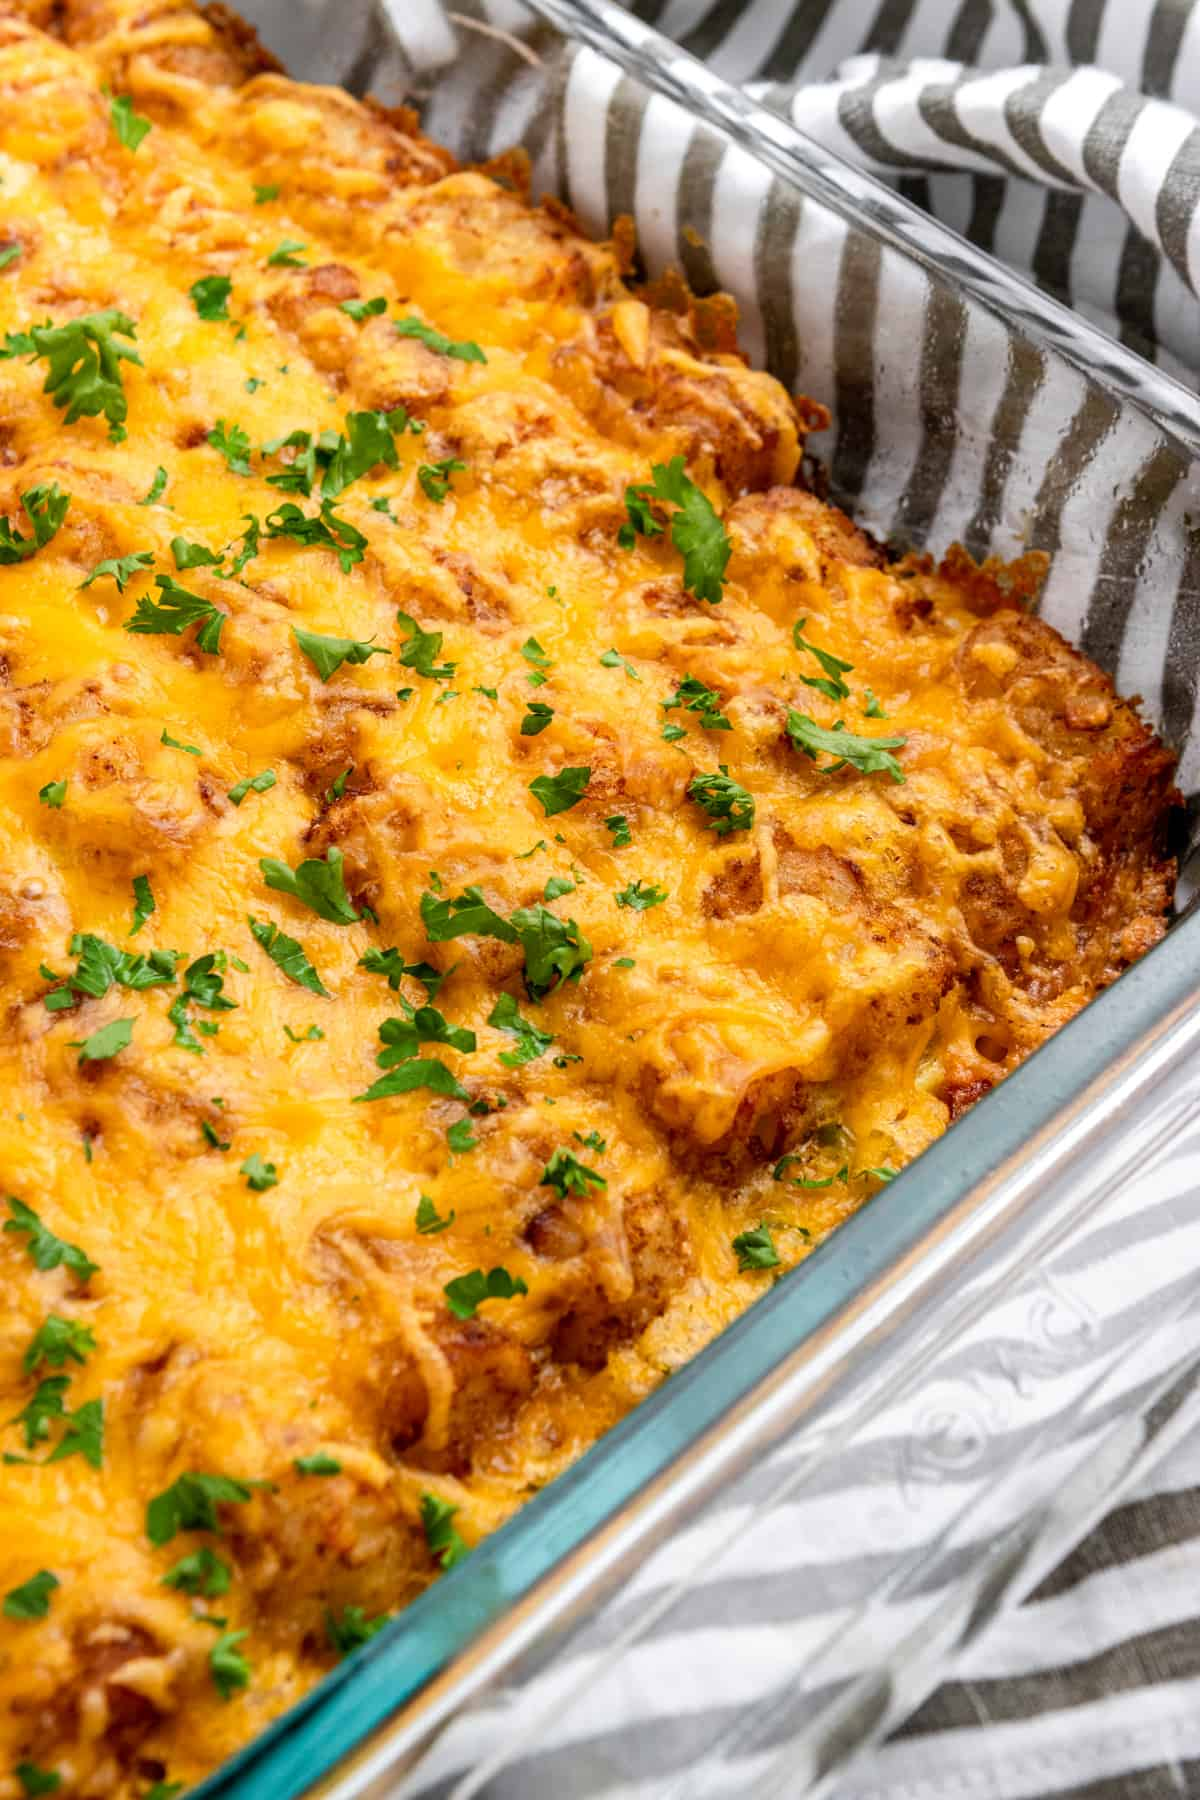 Breakfast casserole with tator tots and cheese on top.